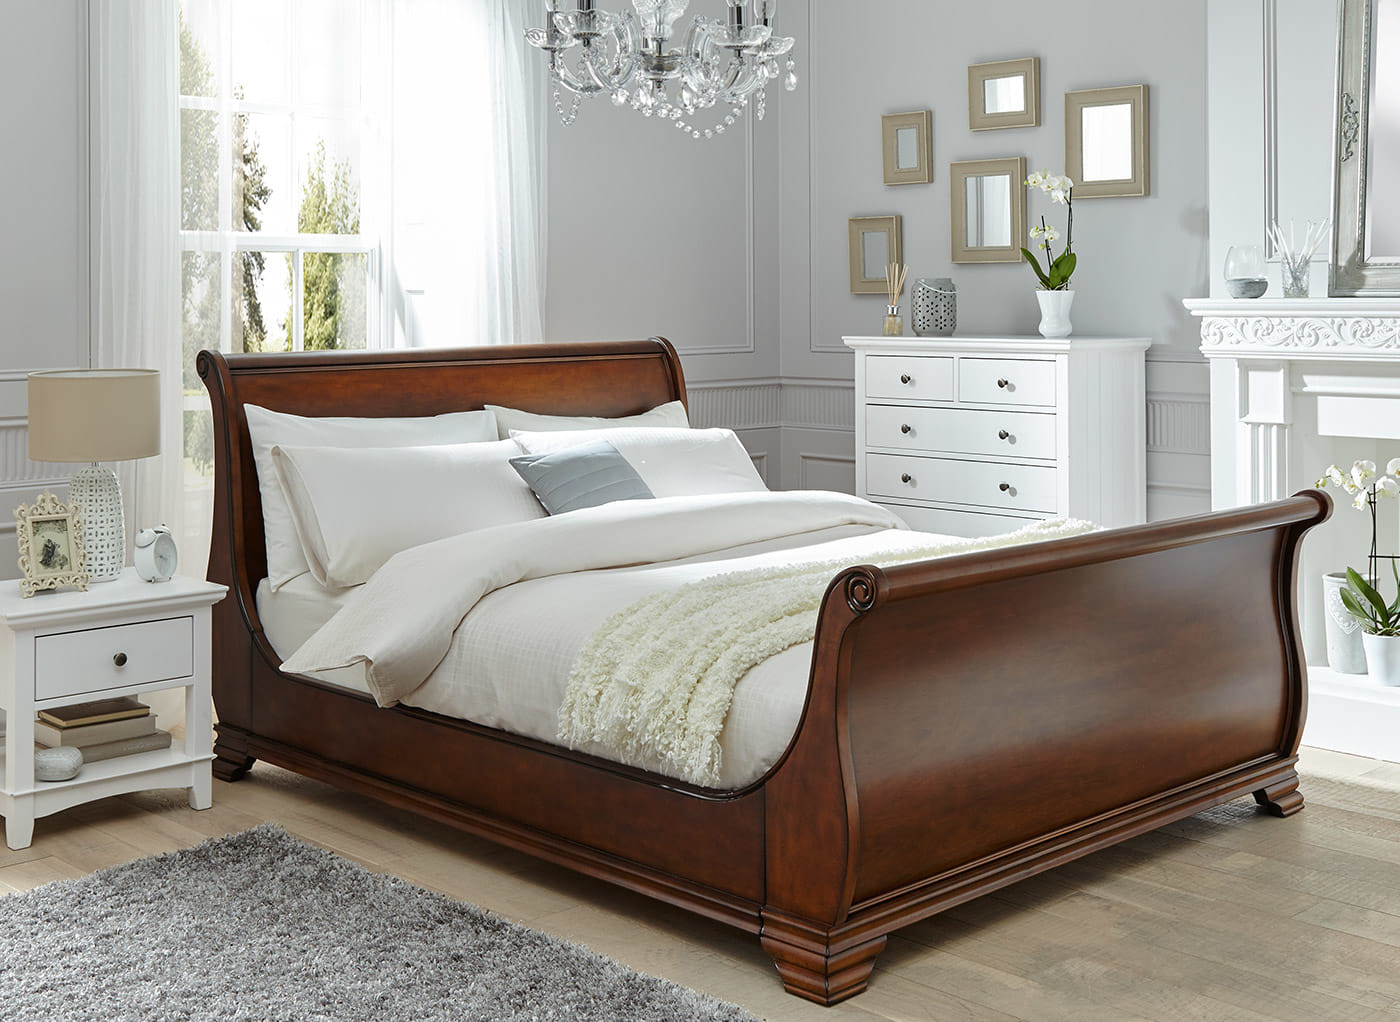 wooden beds orleans walnut wooden bed frame MSIICGD